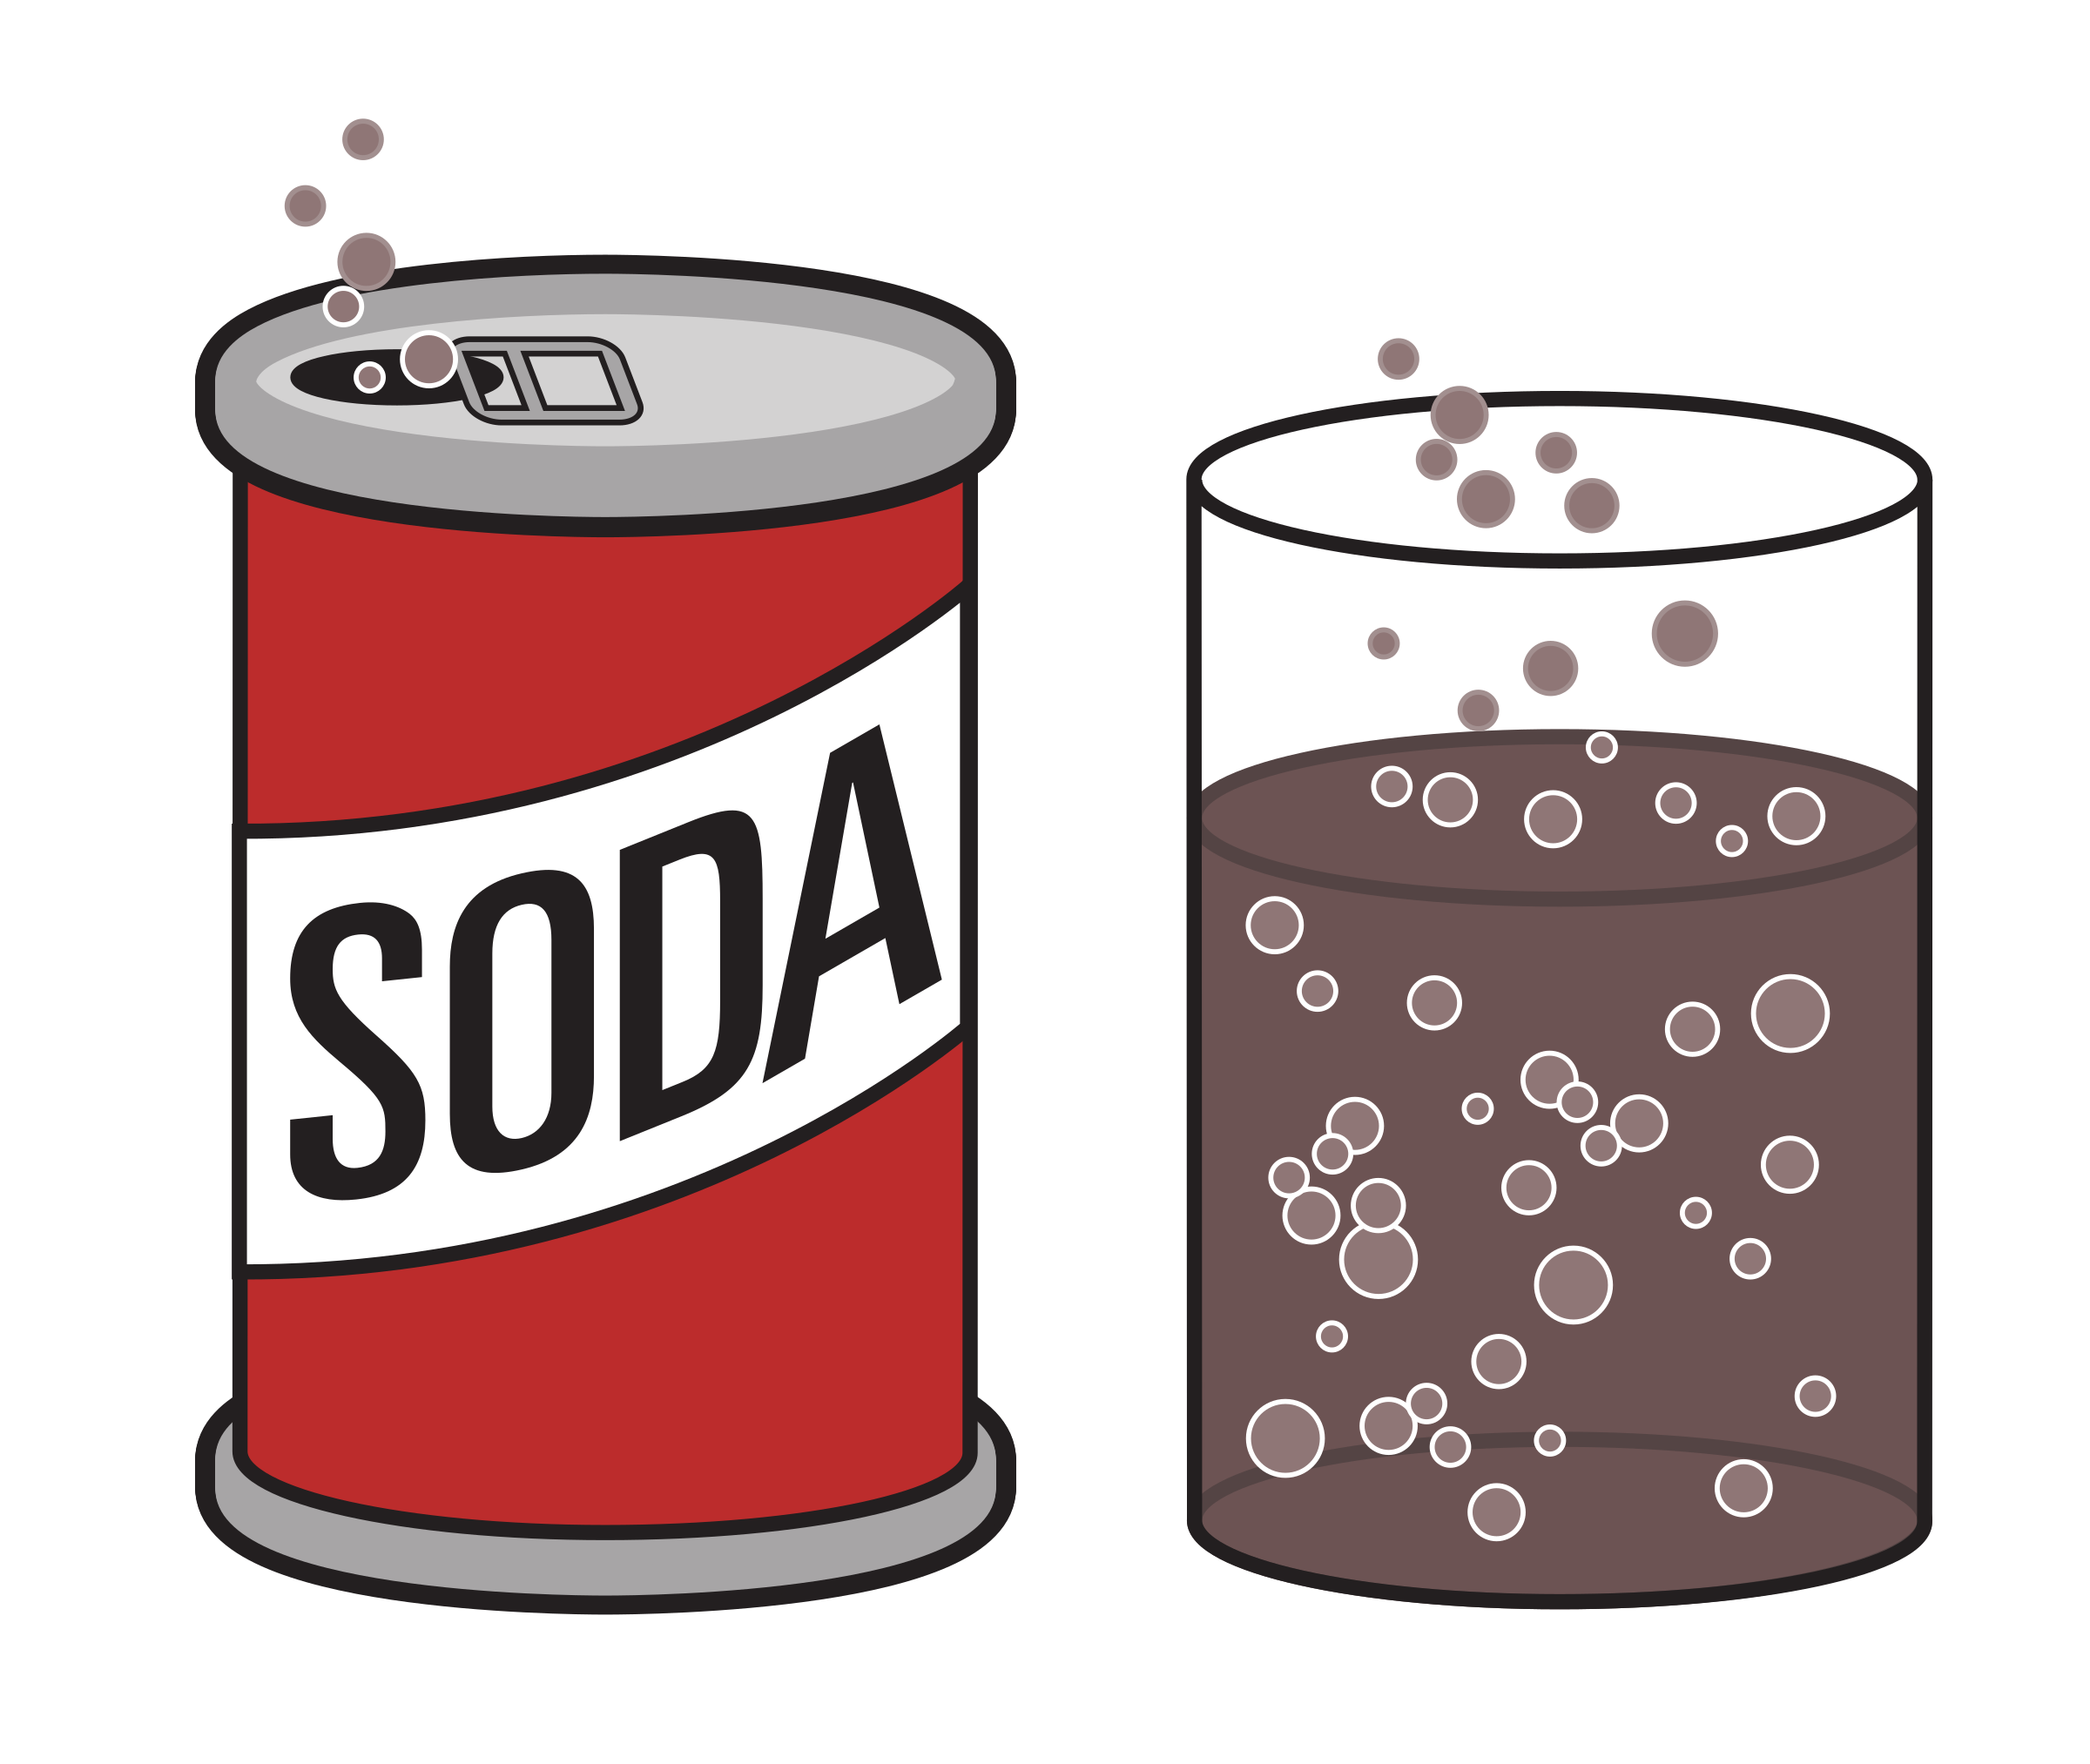 soda clipart object shows